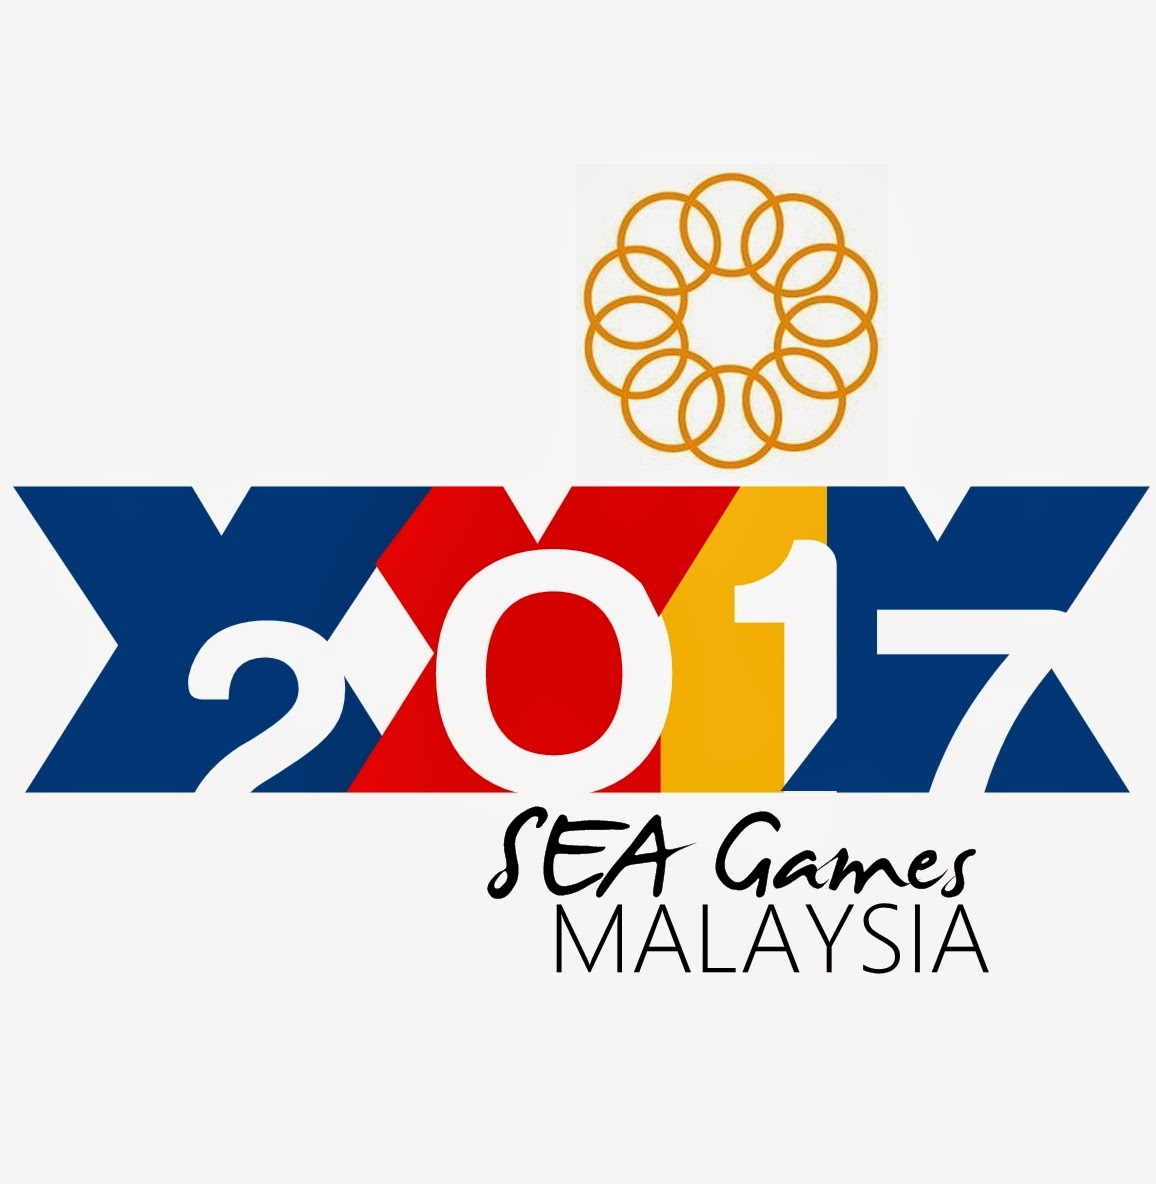 2017 Southeast Asian Games